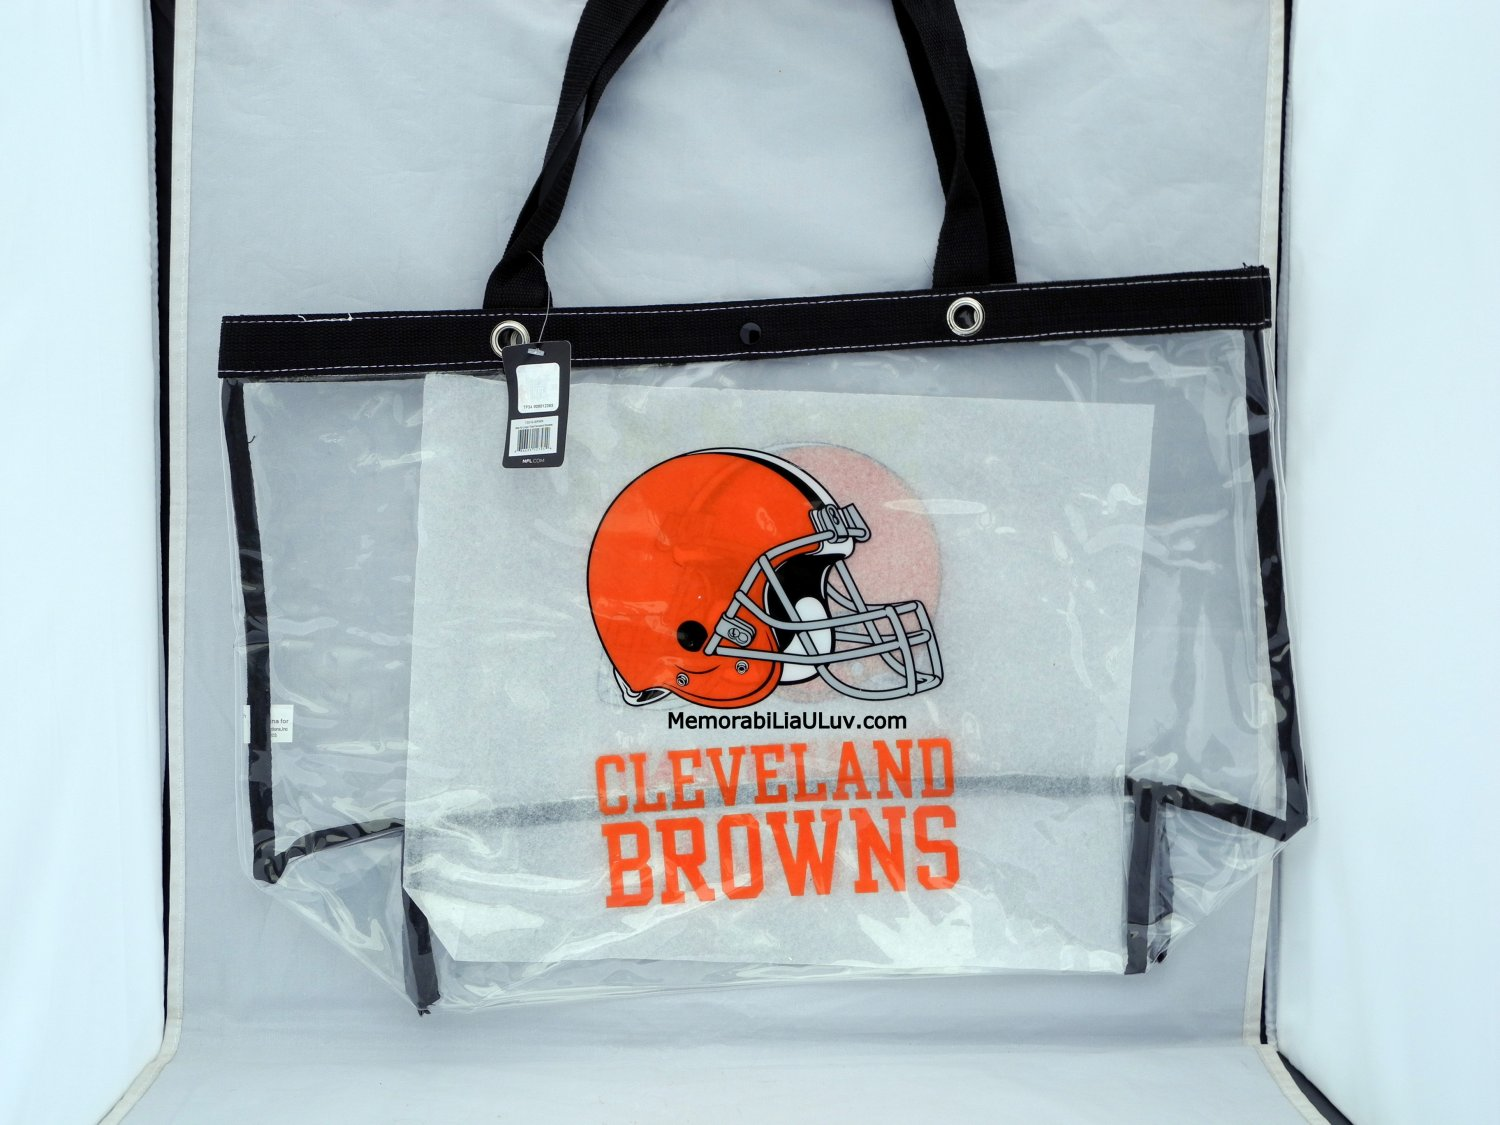 Cleveland Browns Clear Bag Tote Messenger Bag NFL